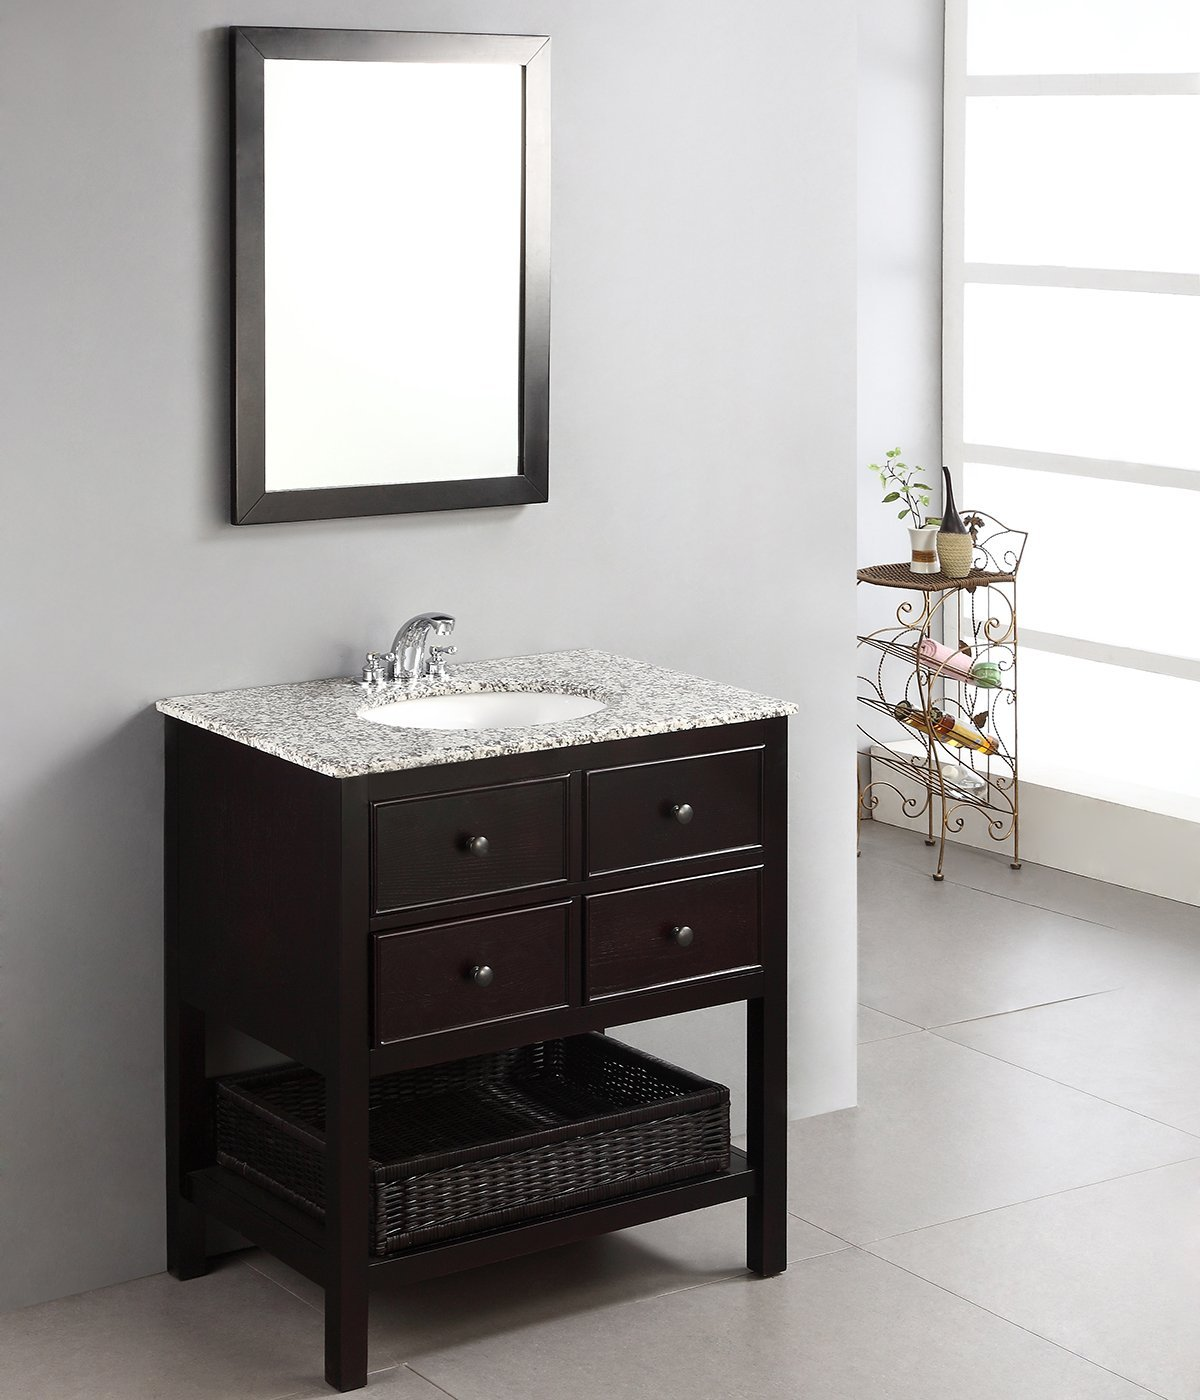 Bathselect 30 Bath Vanity with Dappled Grey Granite Top